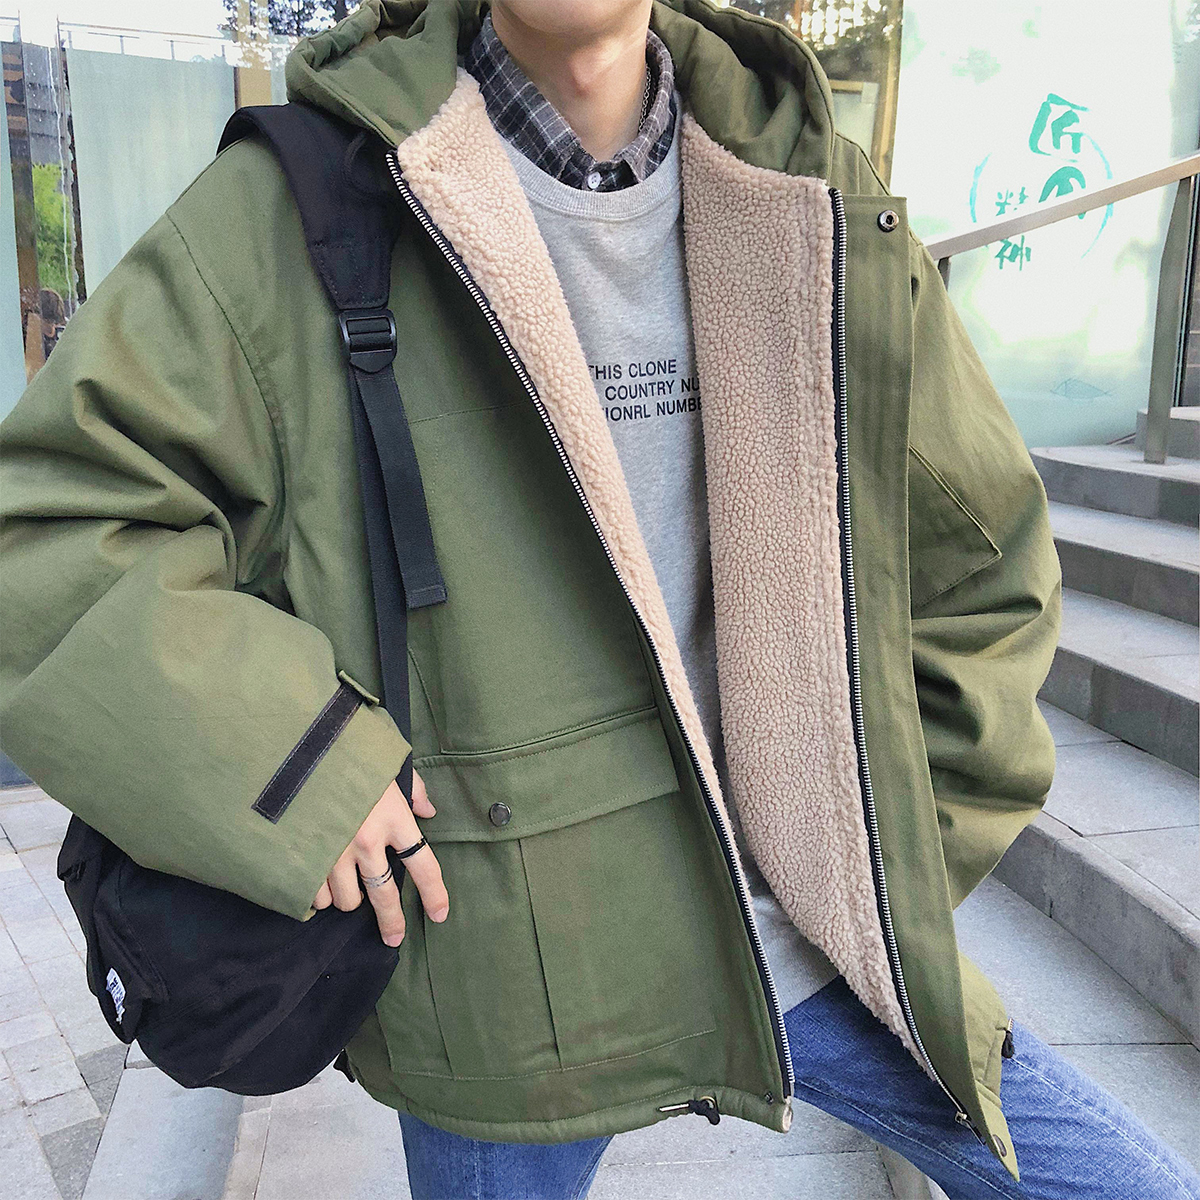 ec3d20e8700 2018 Winter Japan Style Men s Brand Casual Parkas Lamb Wool Coats Loose  Snow Jackets In Warm Cotton-padded Clothes Size S-XL